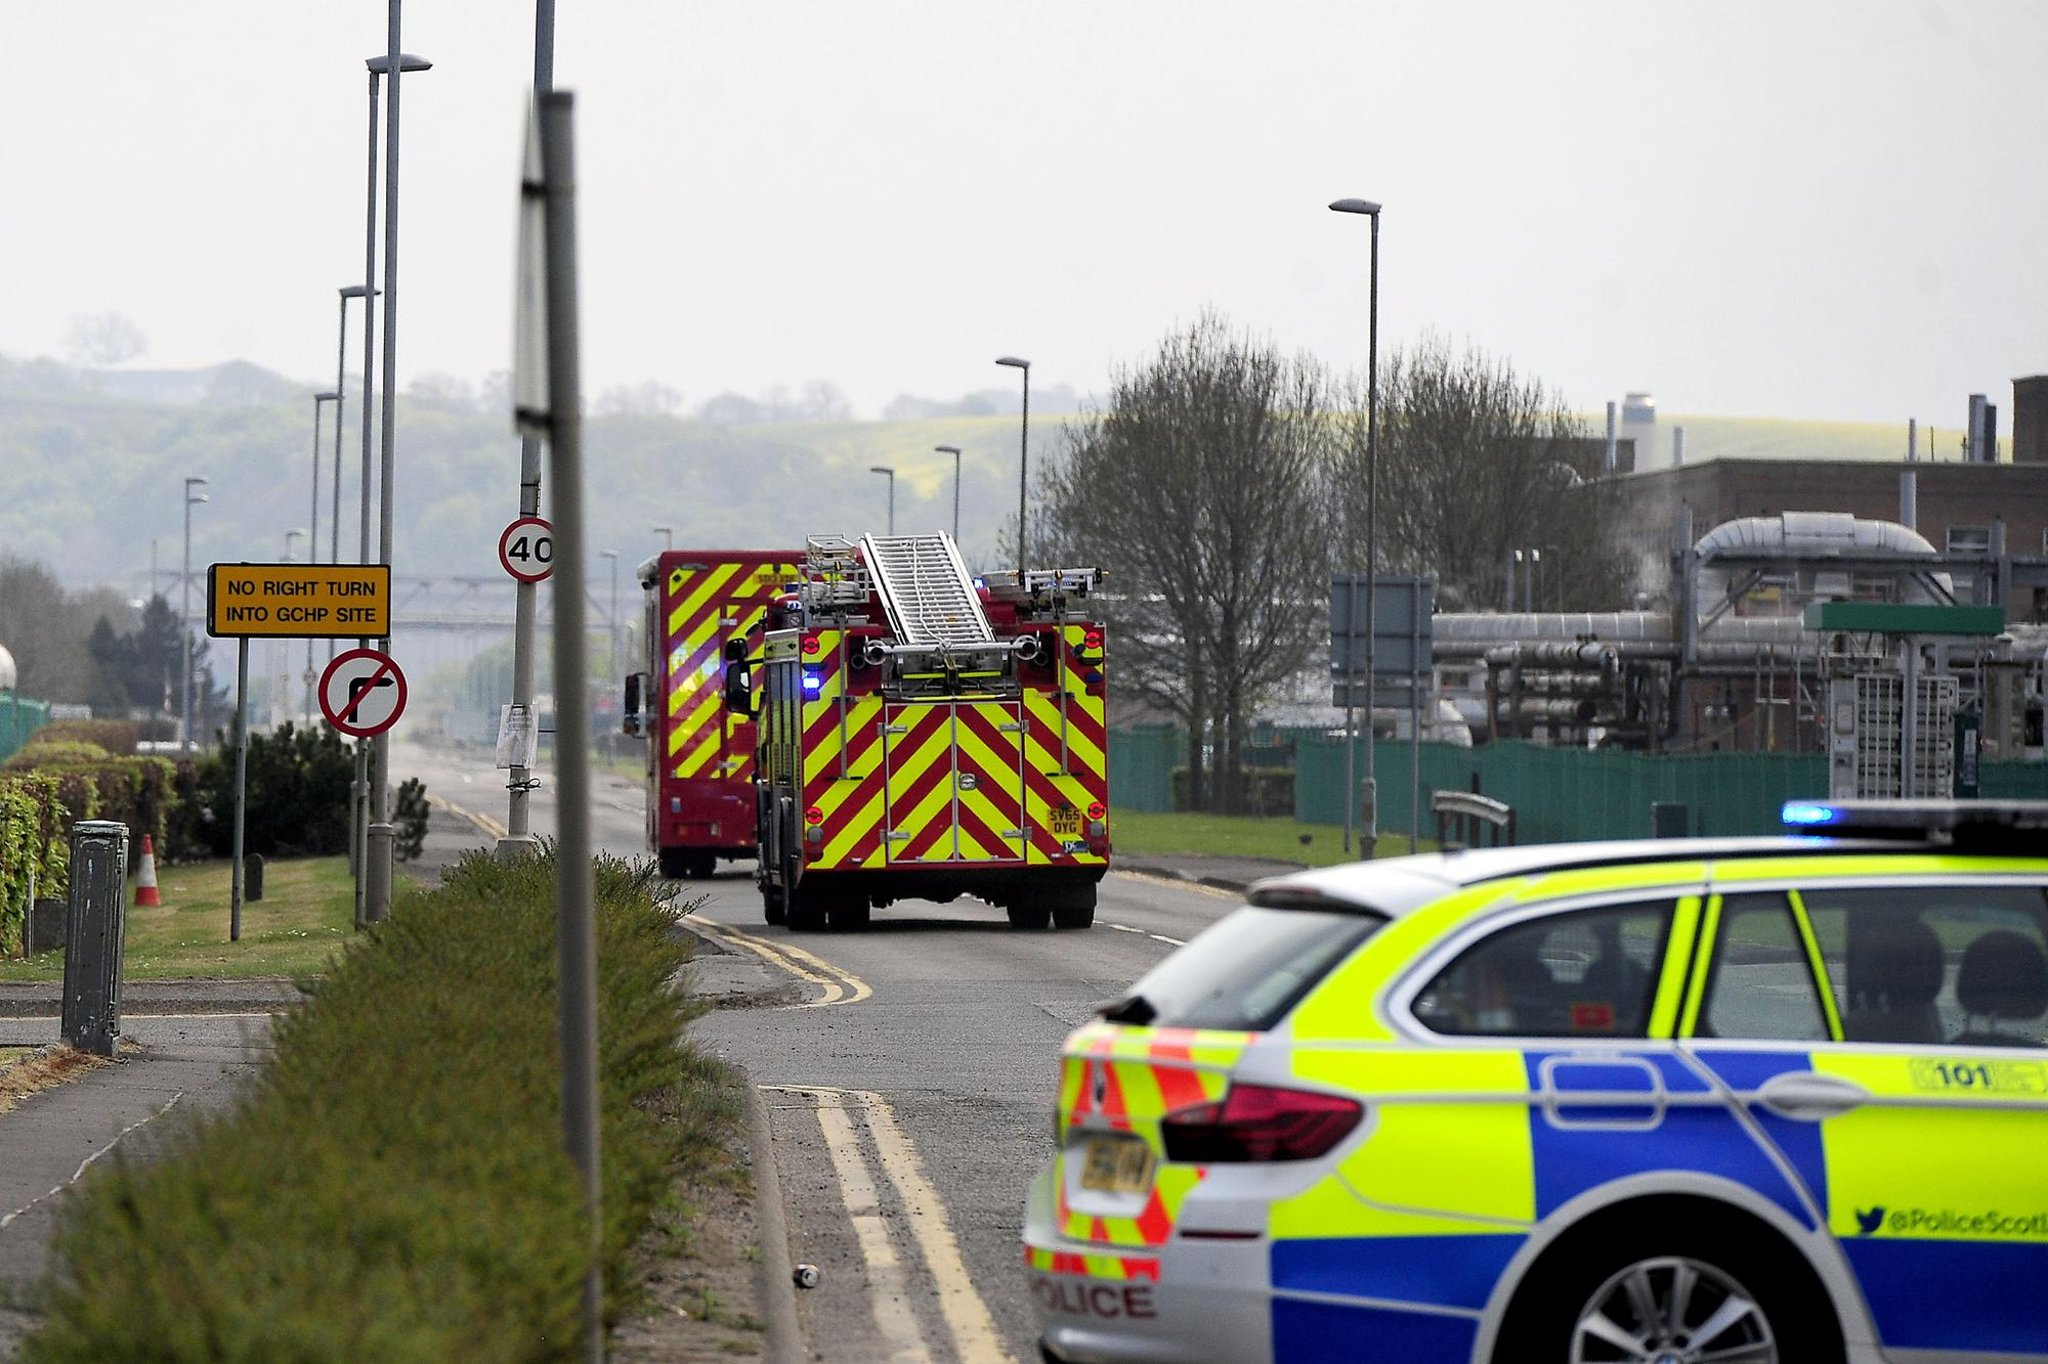 Ineos handed £400,000 fine for 'explosive cloud' incident at Grangemouth